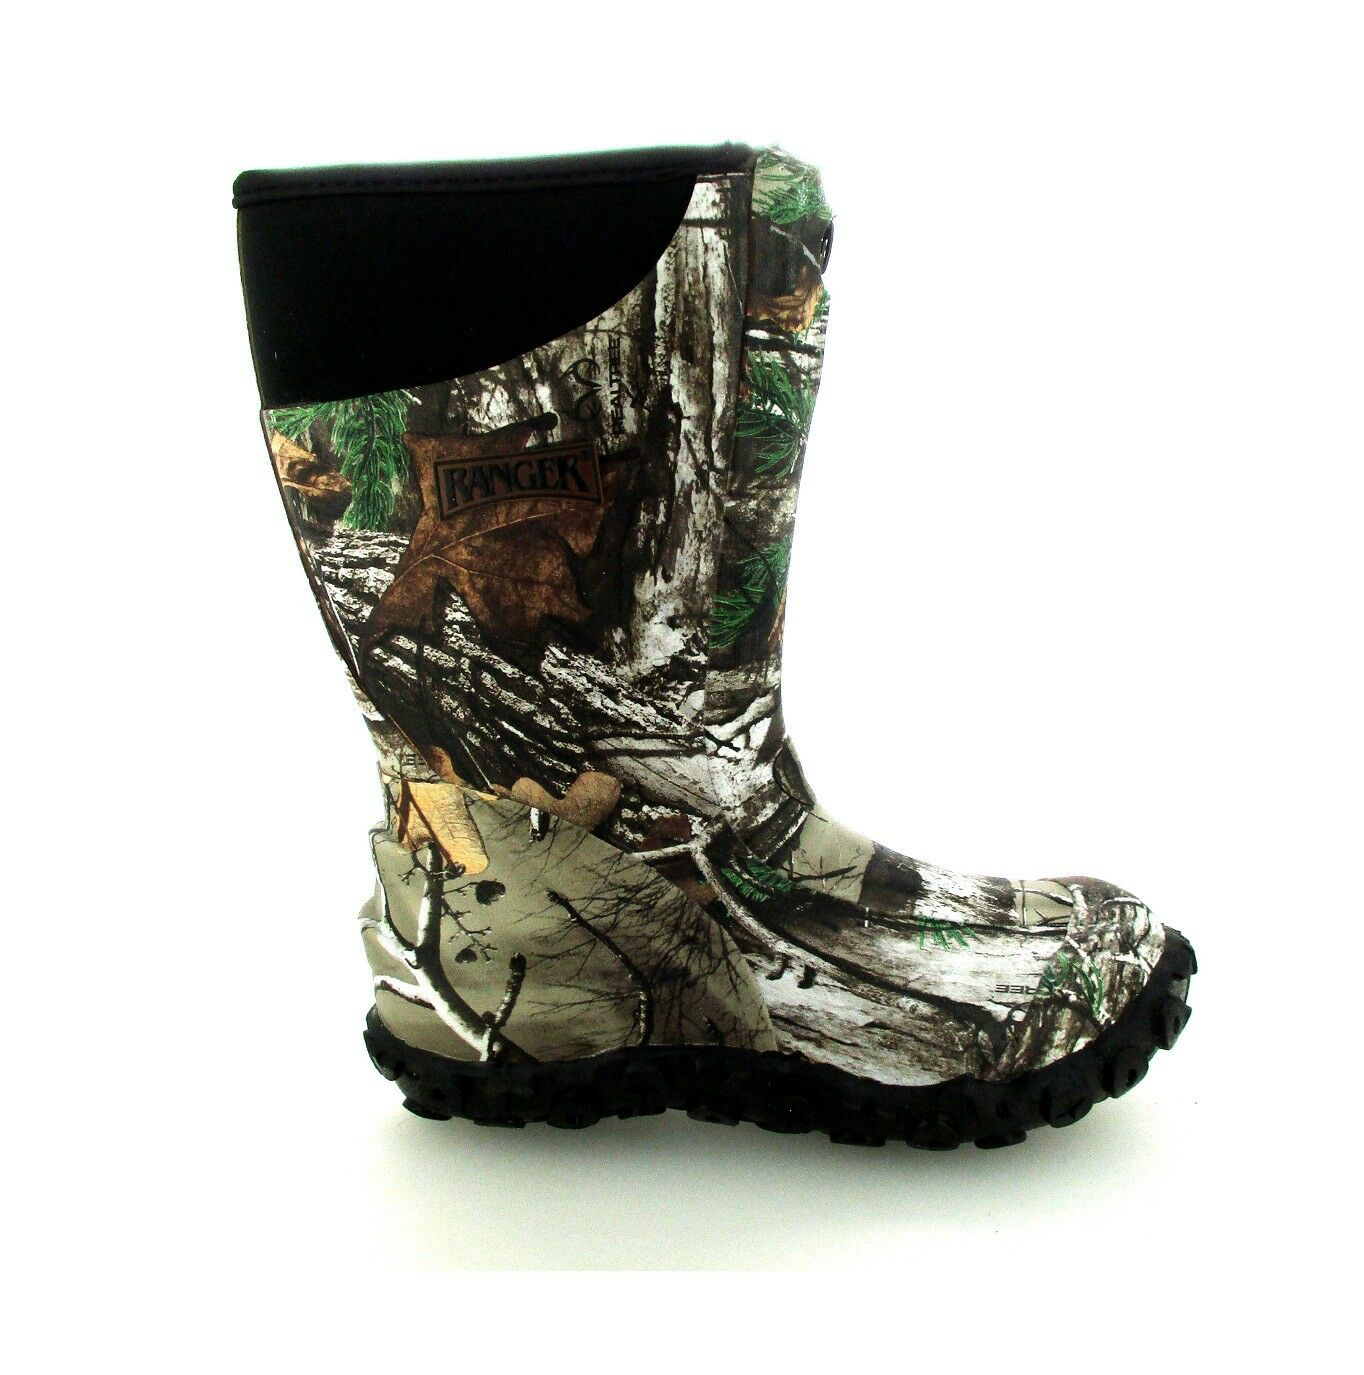 Ranger Pike Zip Kid's Realtree AP 100% Waterproof Boots Size 1 Brand New In Box